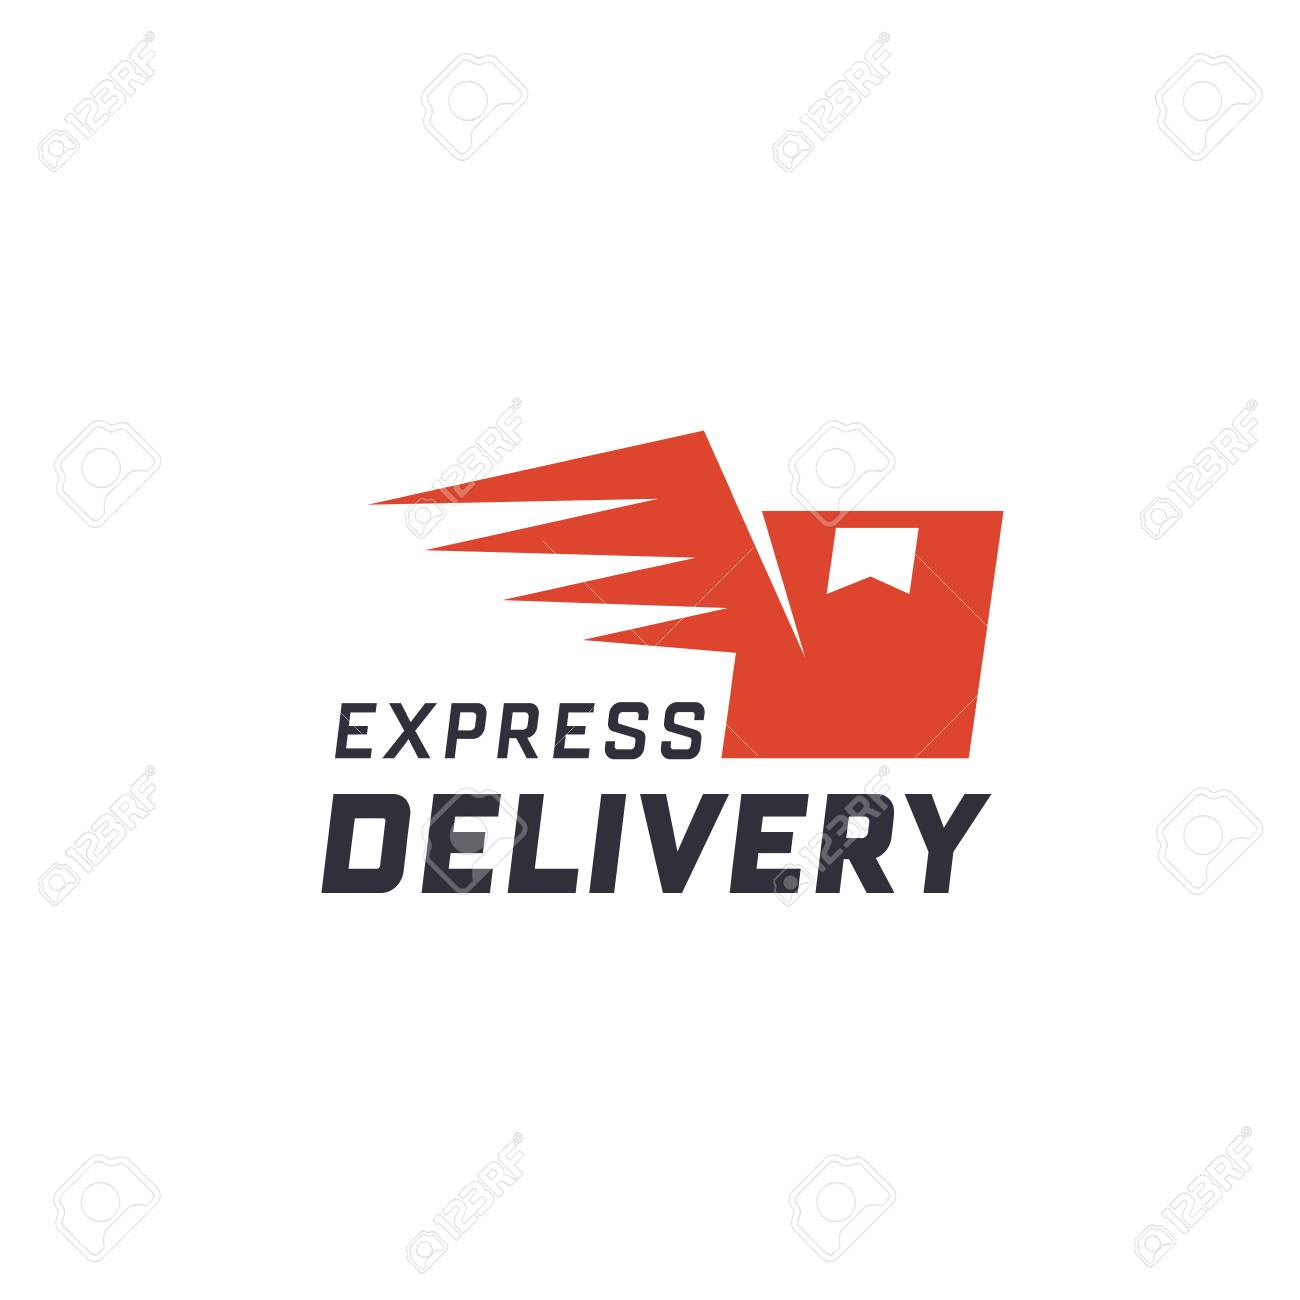 Express delivery  Delivery label for online shopping  Worldwide